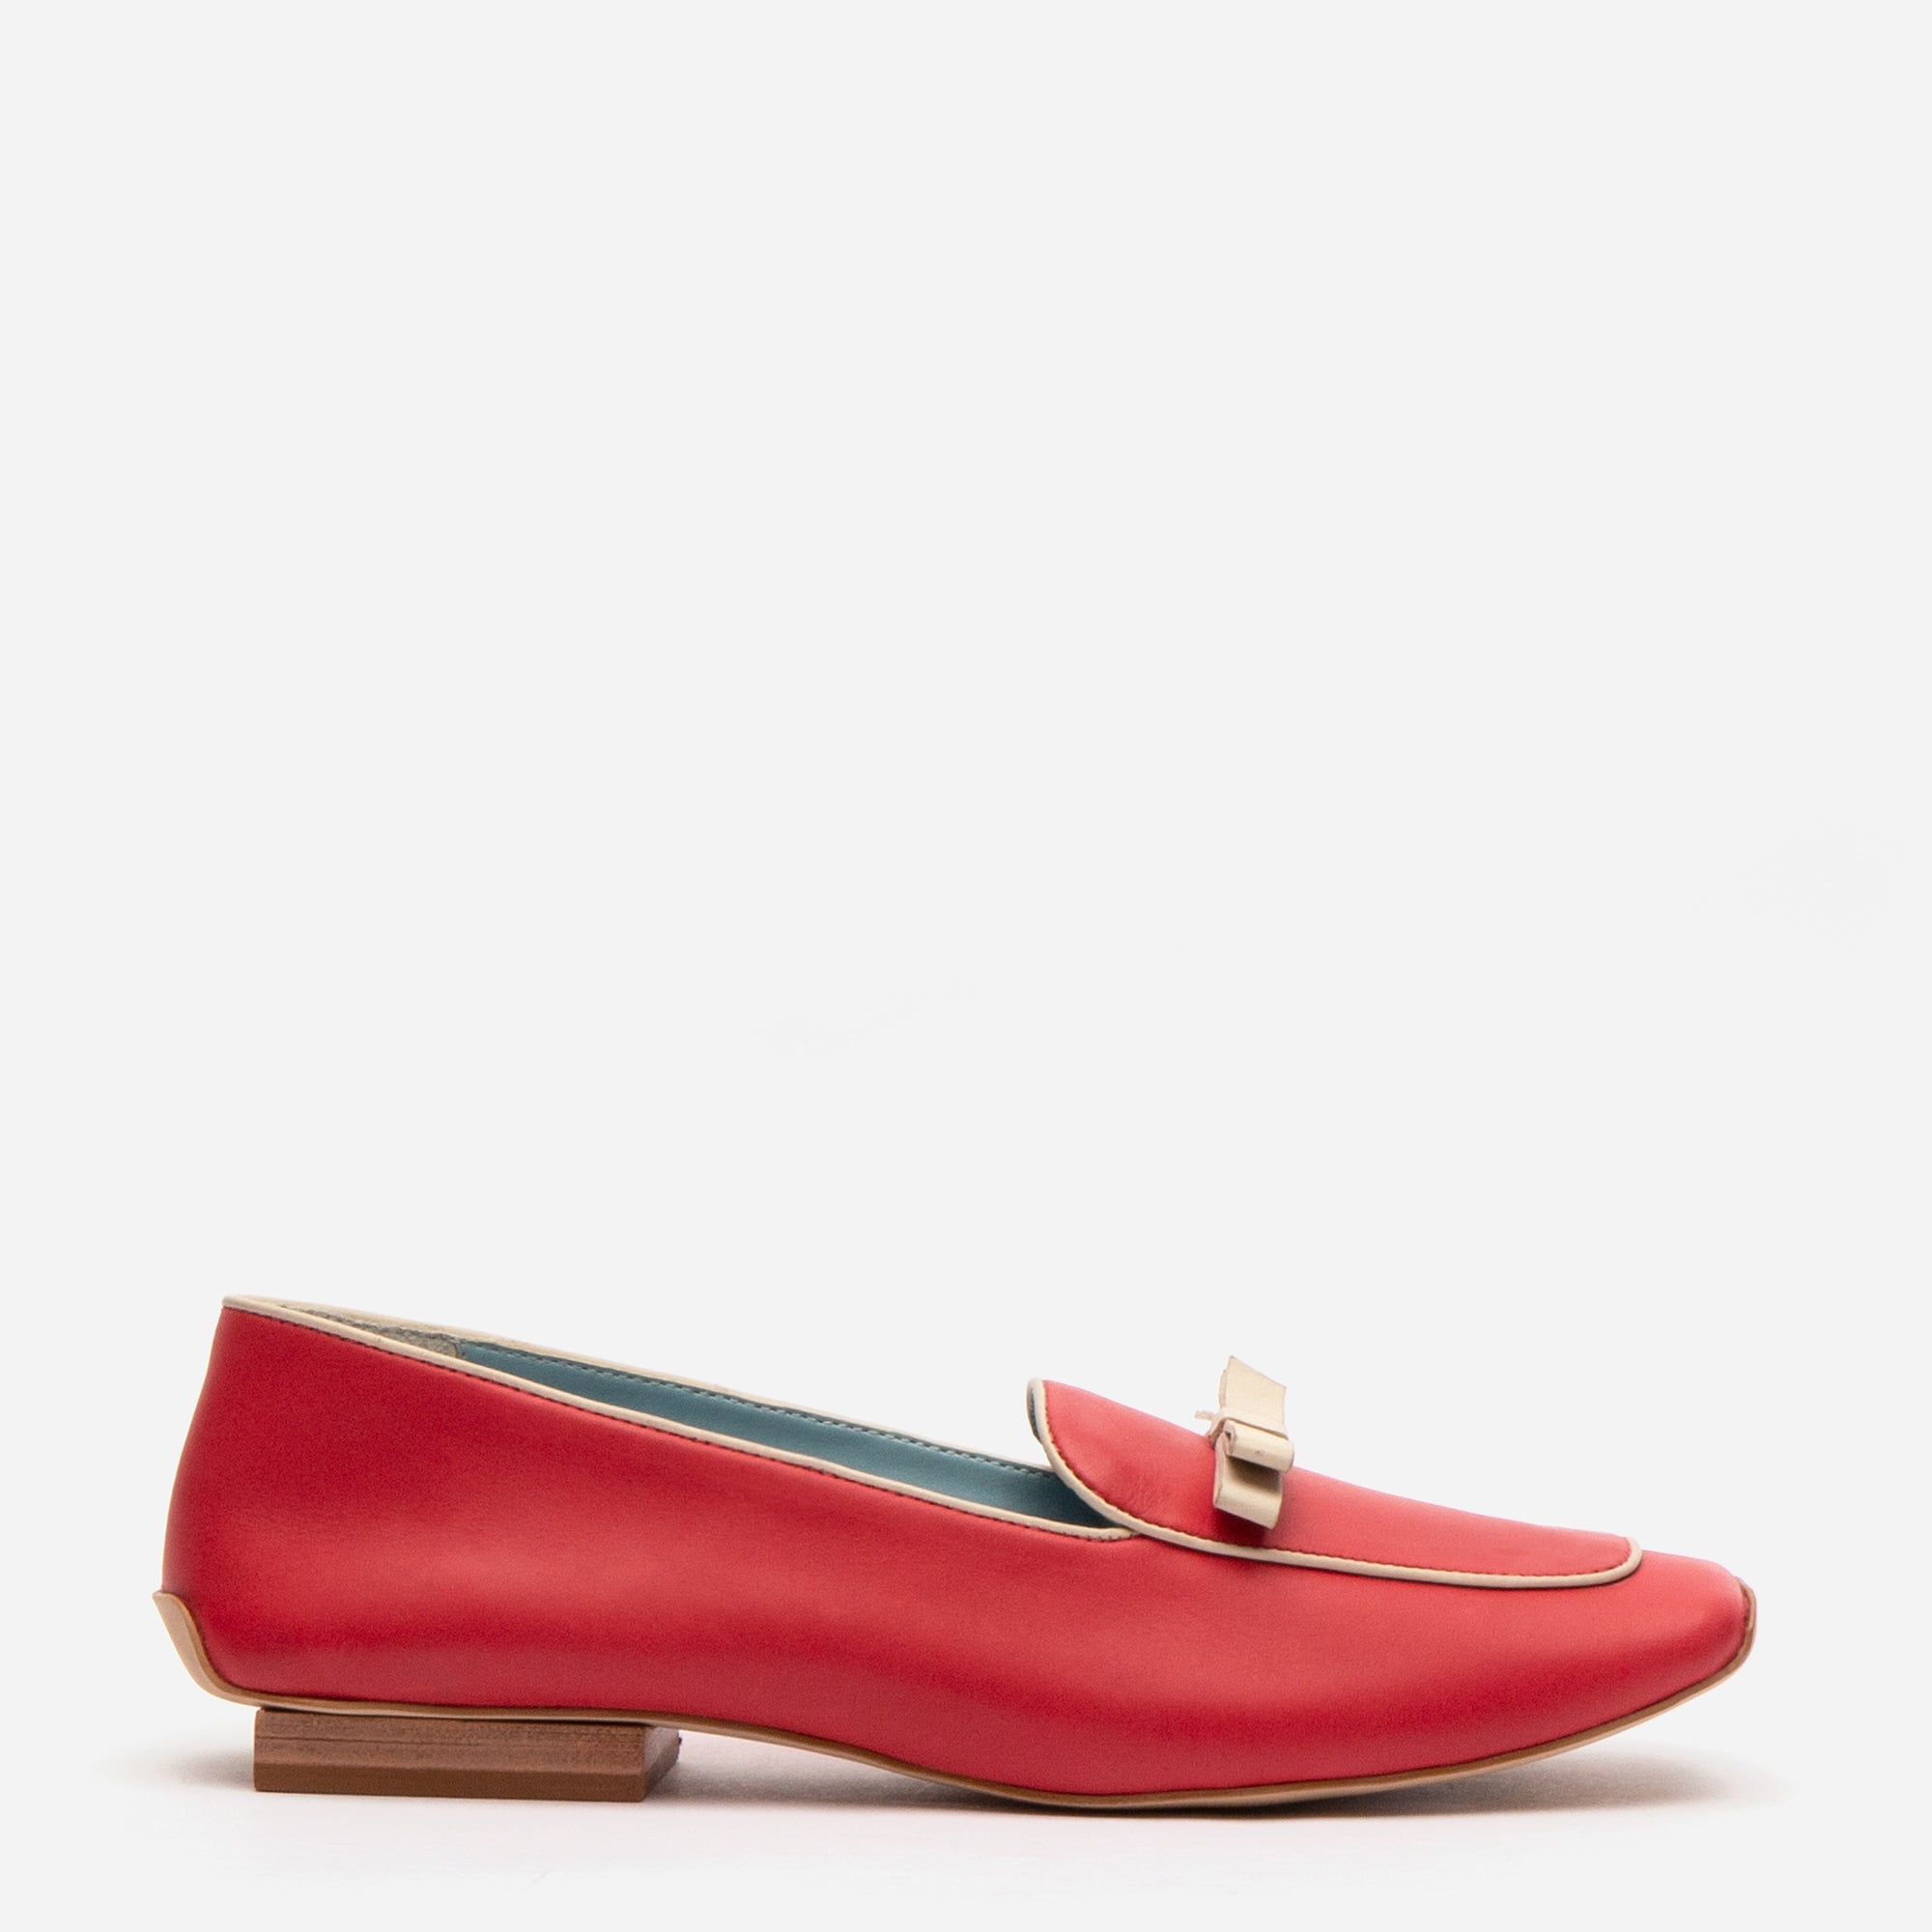 Suzanne Loafer Leather Red Oyster - Frances Valentine